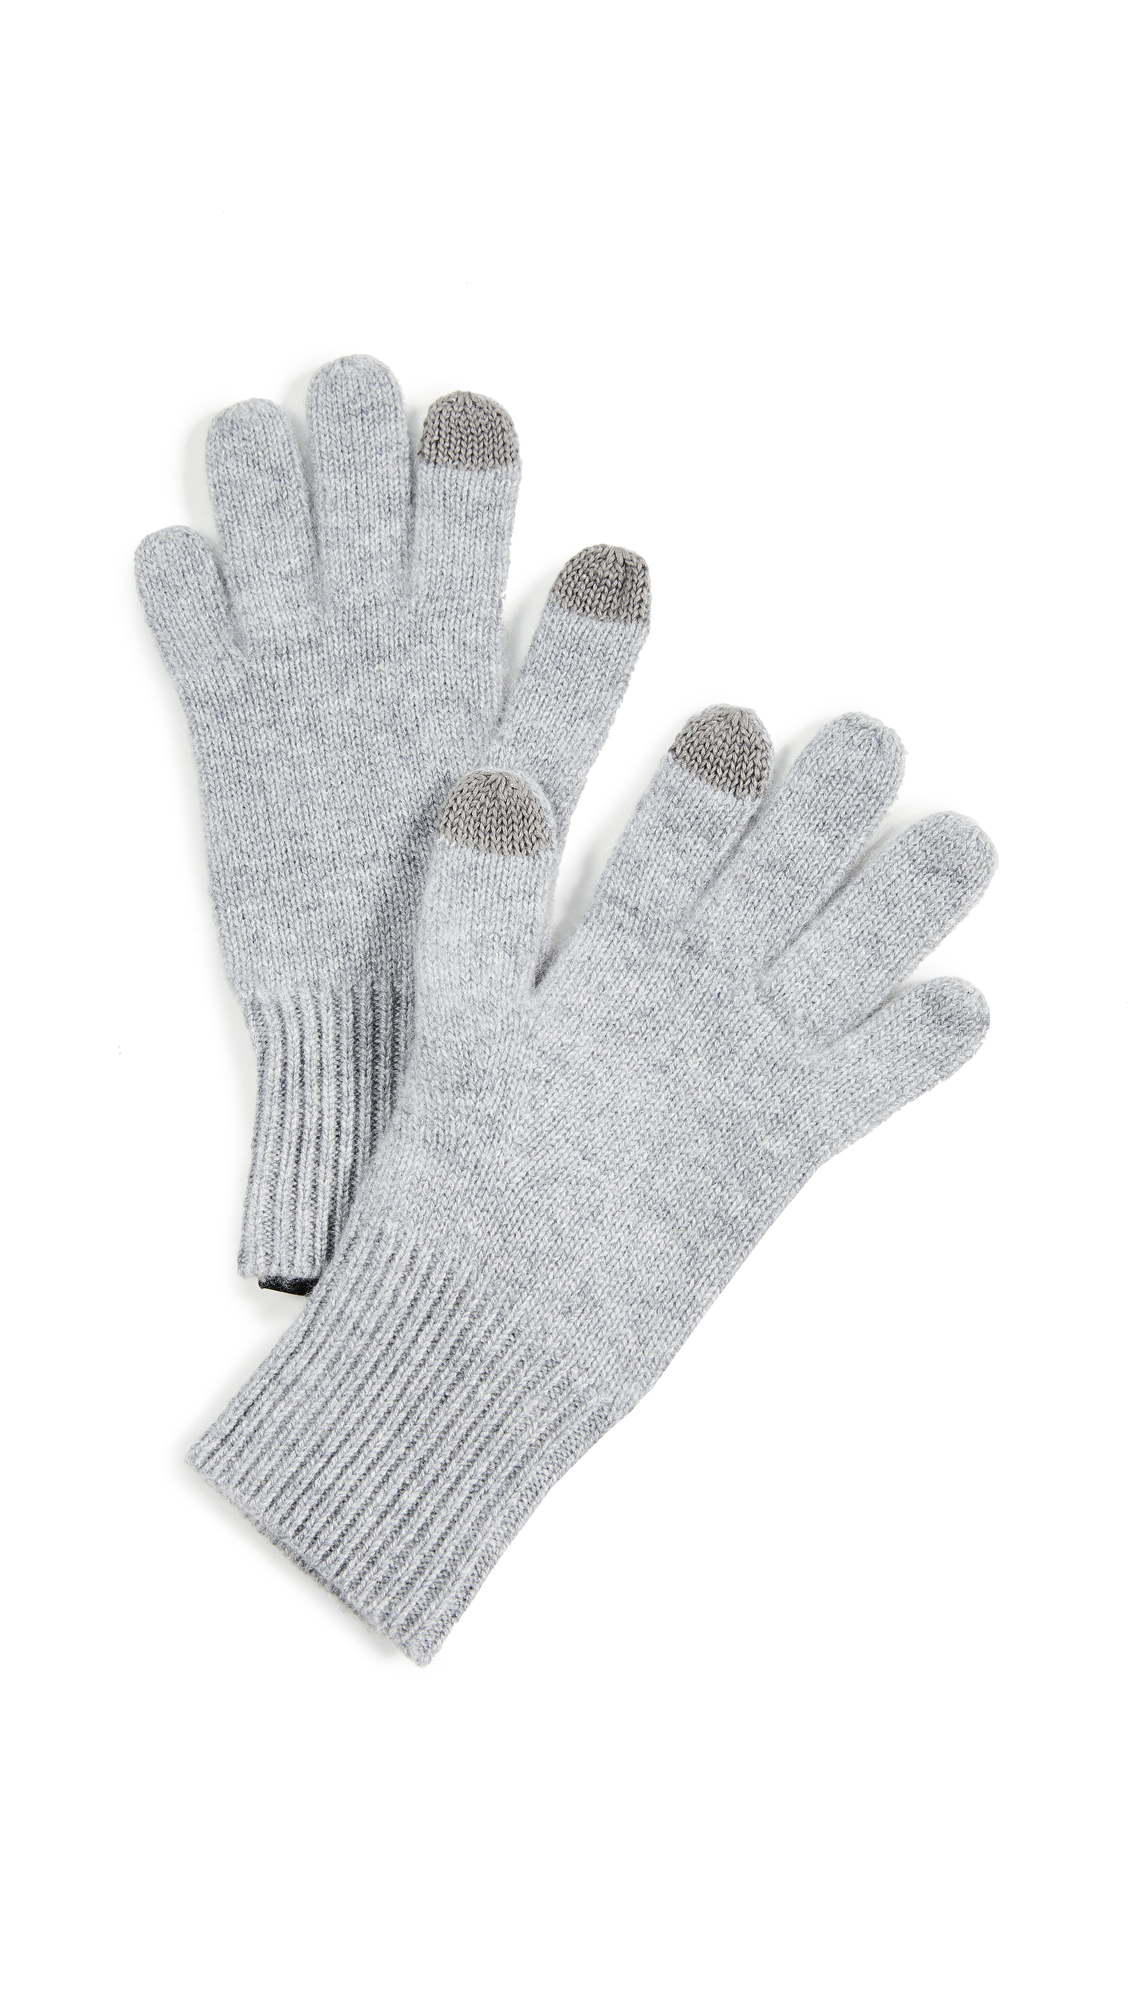 Rag & Bone Ace Cashmere Gloves In Heather Grey